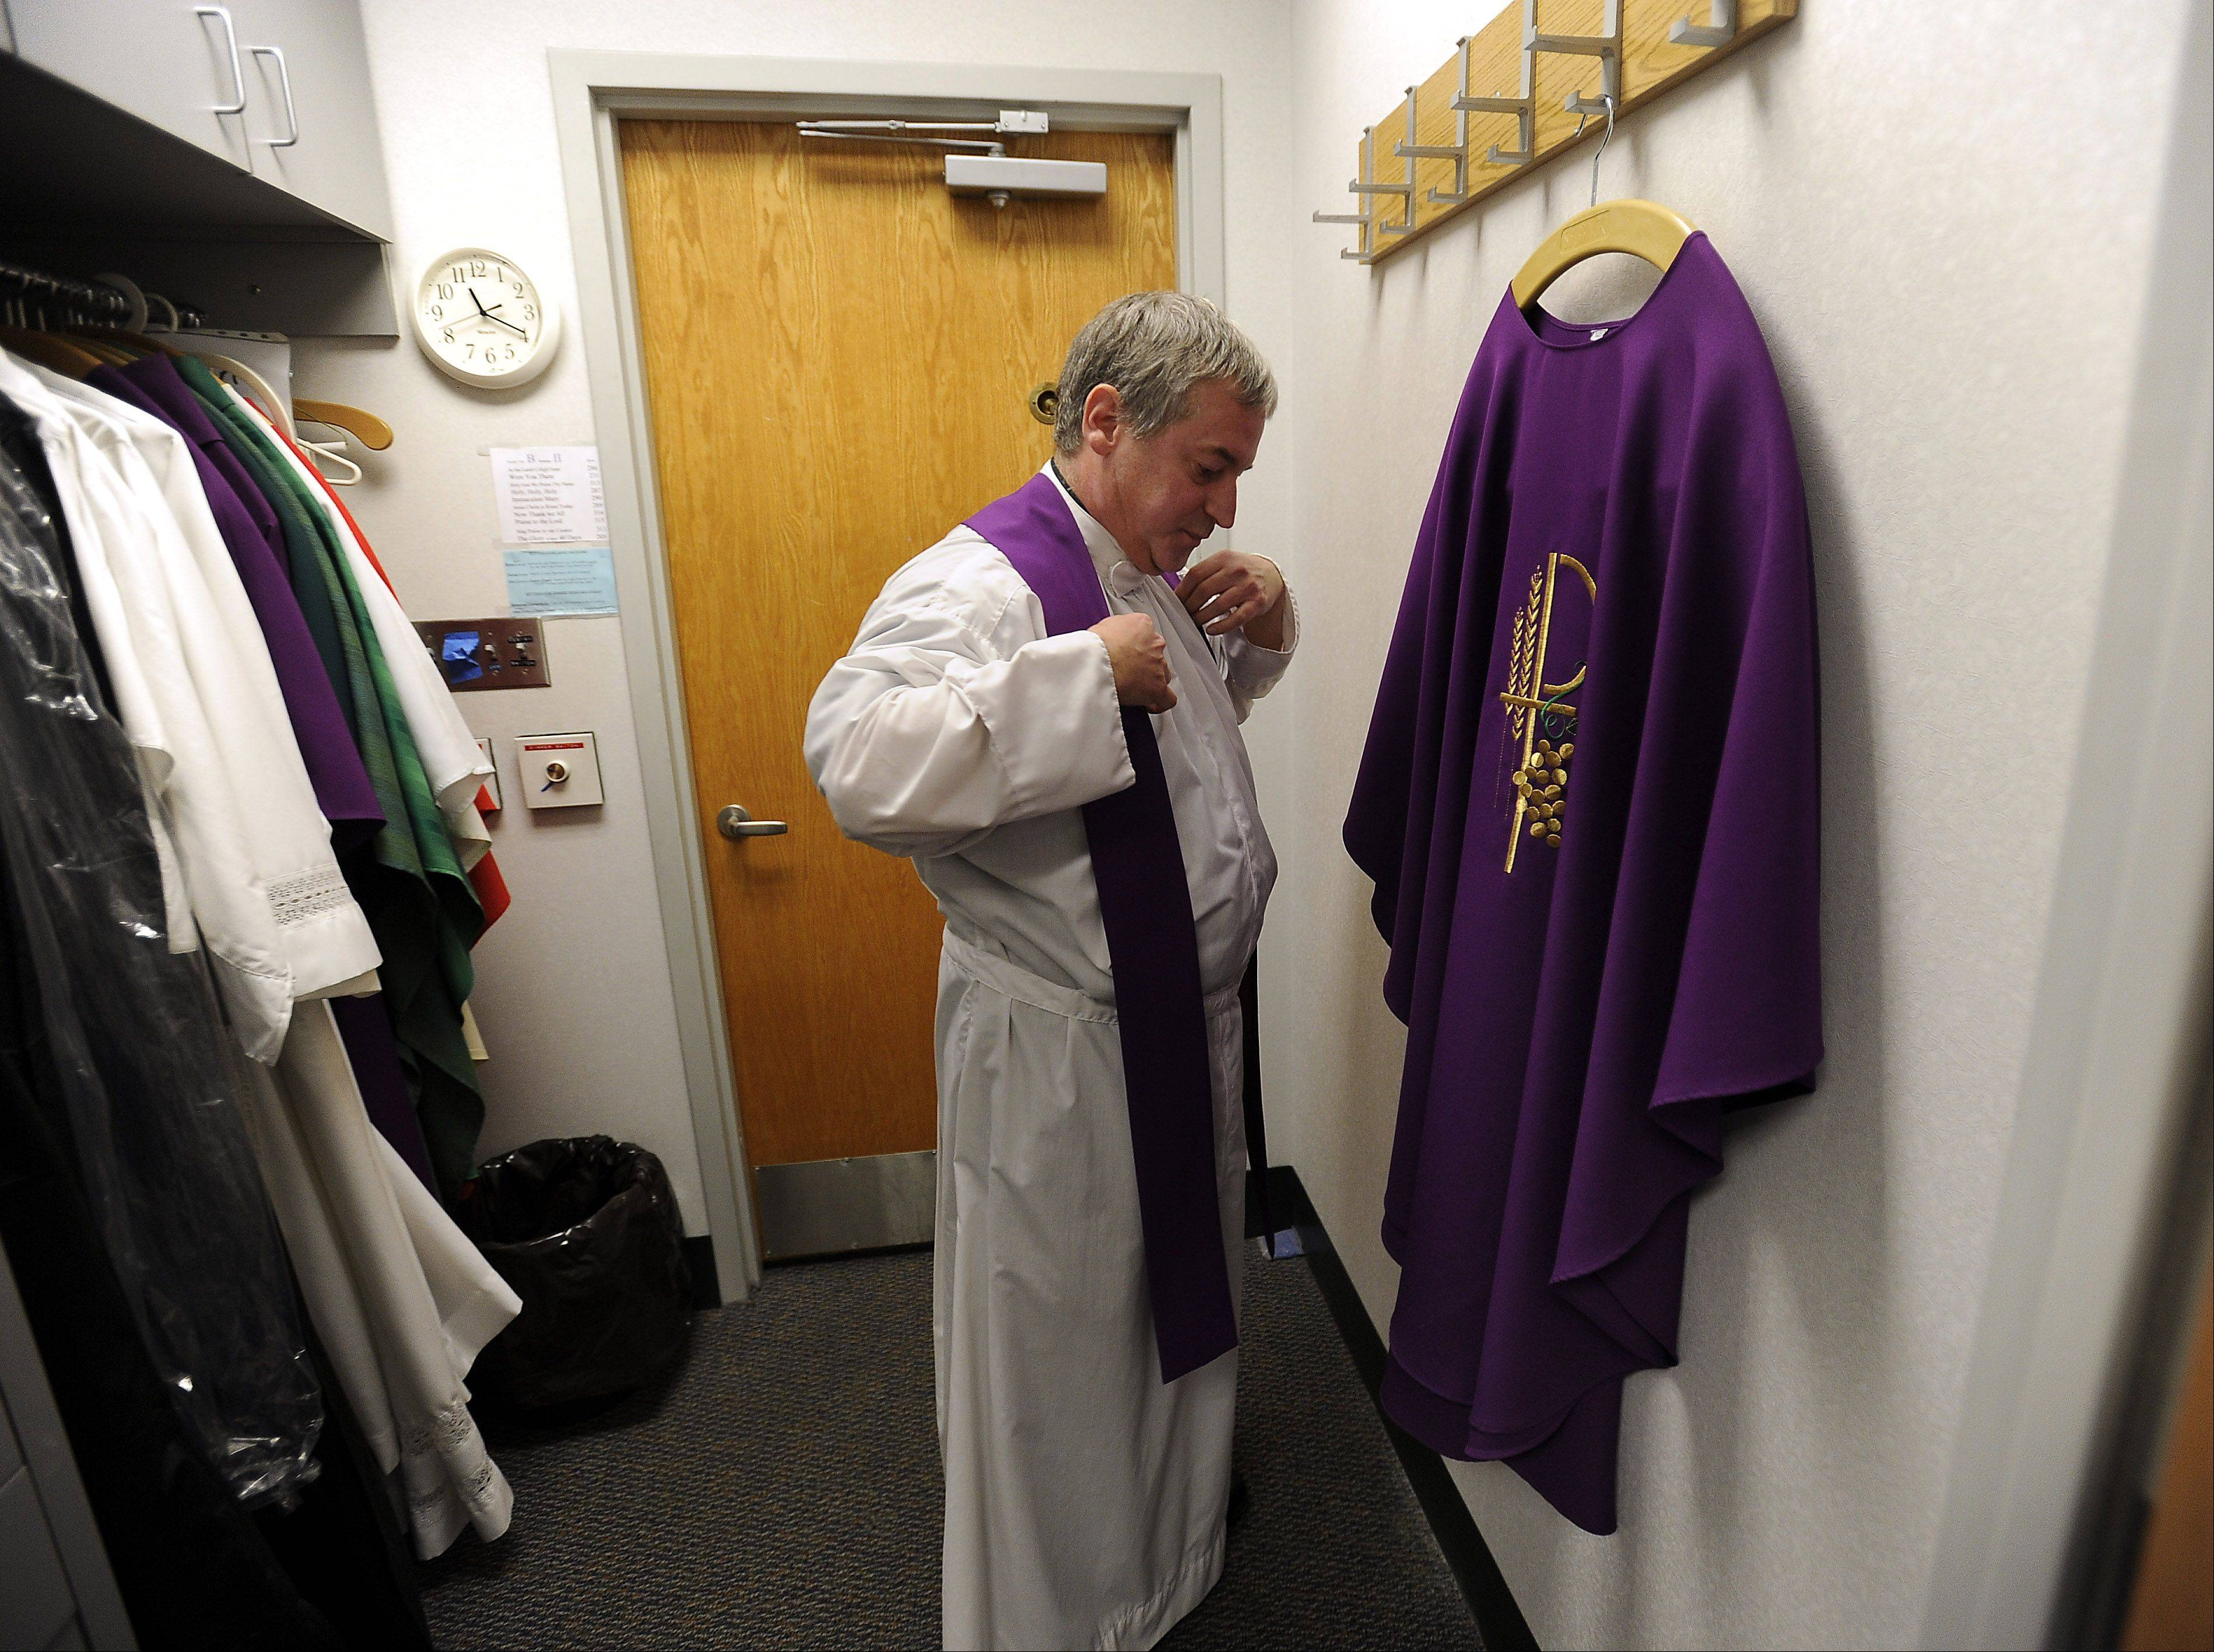 Father Mike prepares himself for Mass by donning his vestments.